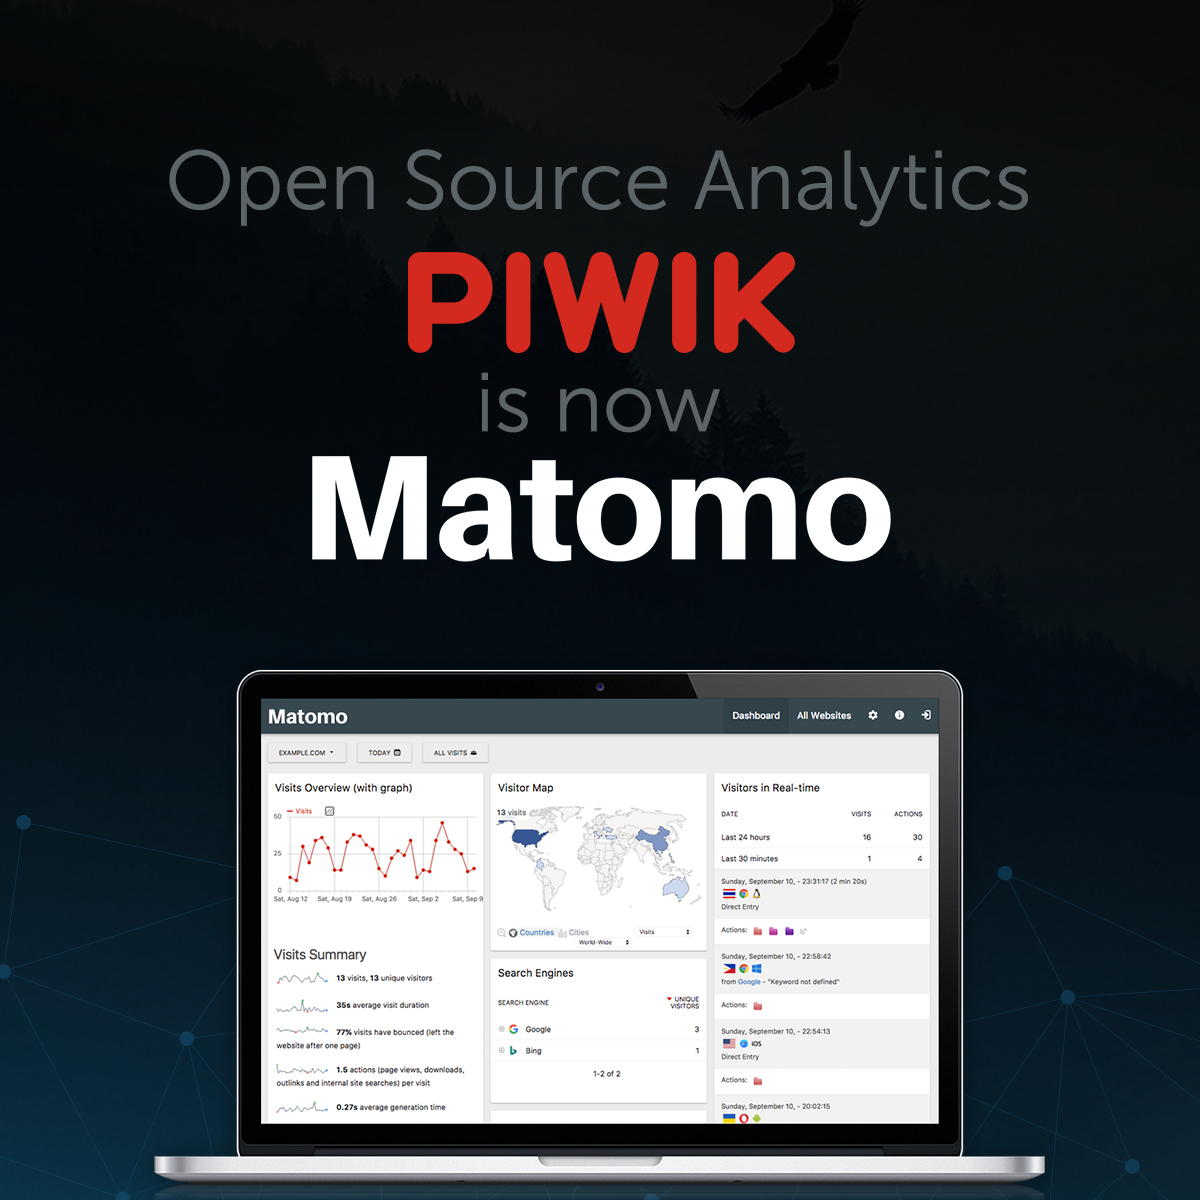 PIWIK the web analytics software will be renamed/rebranded.